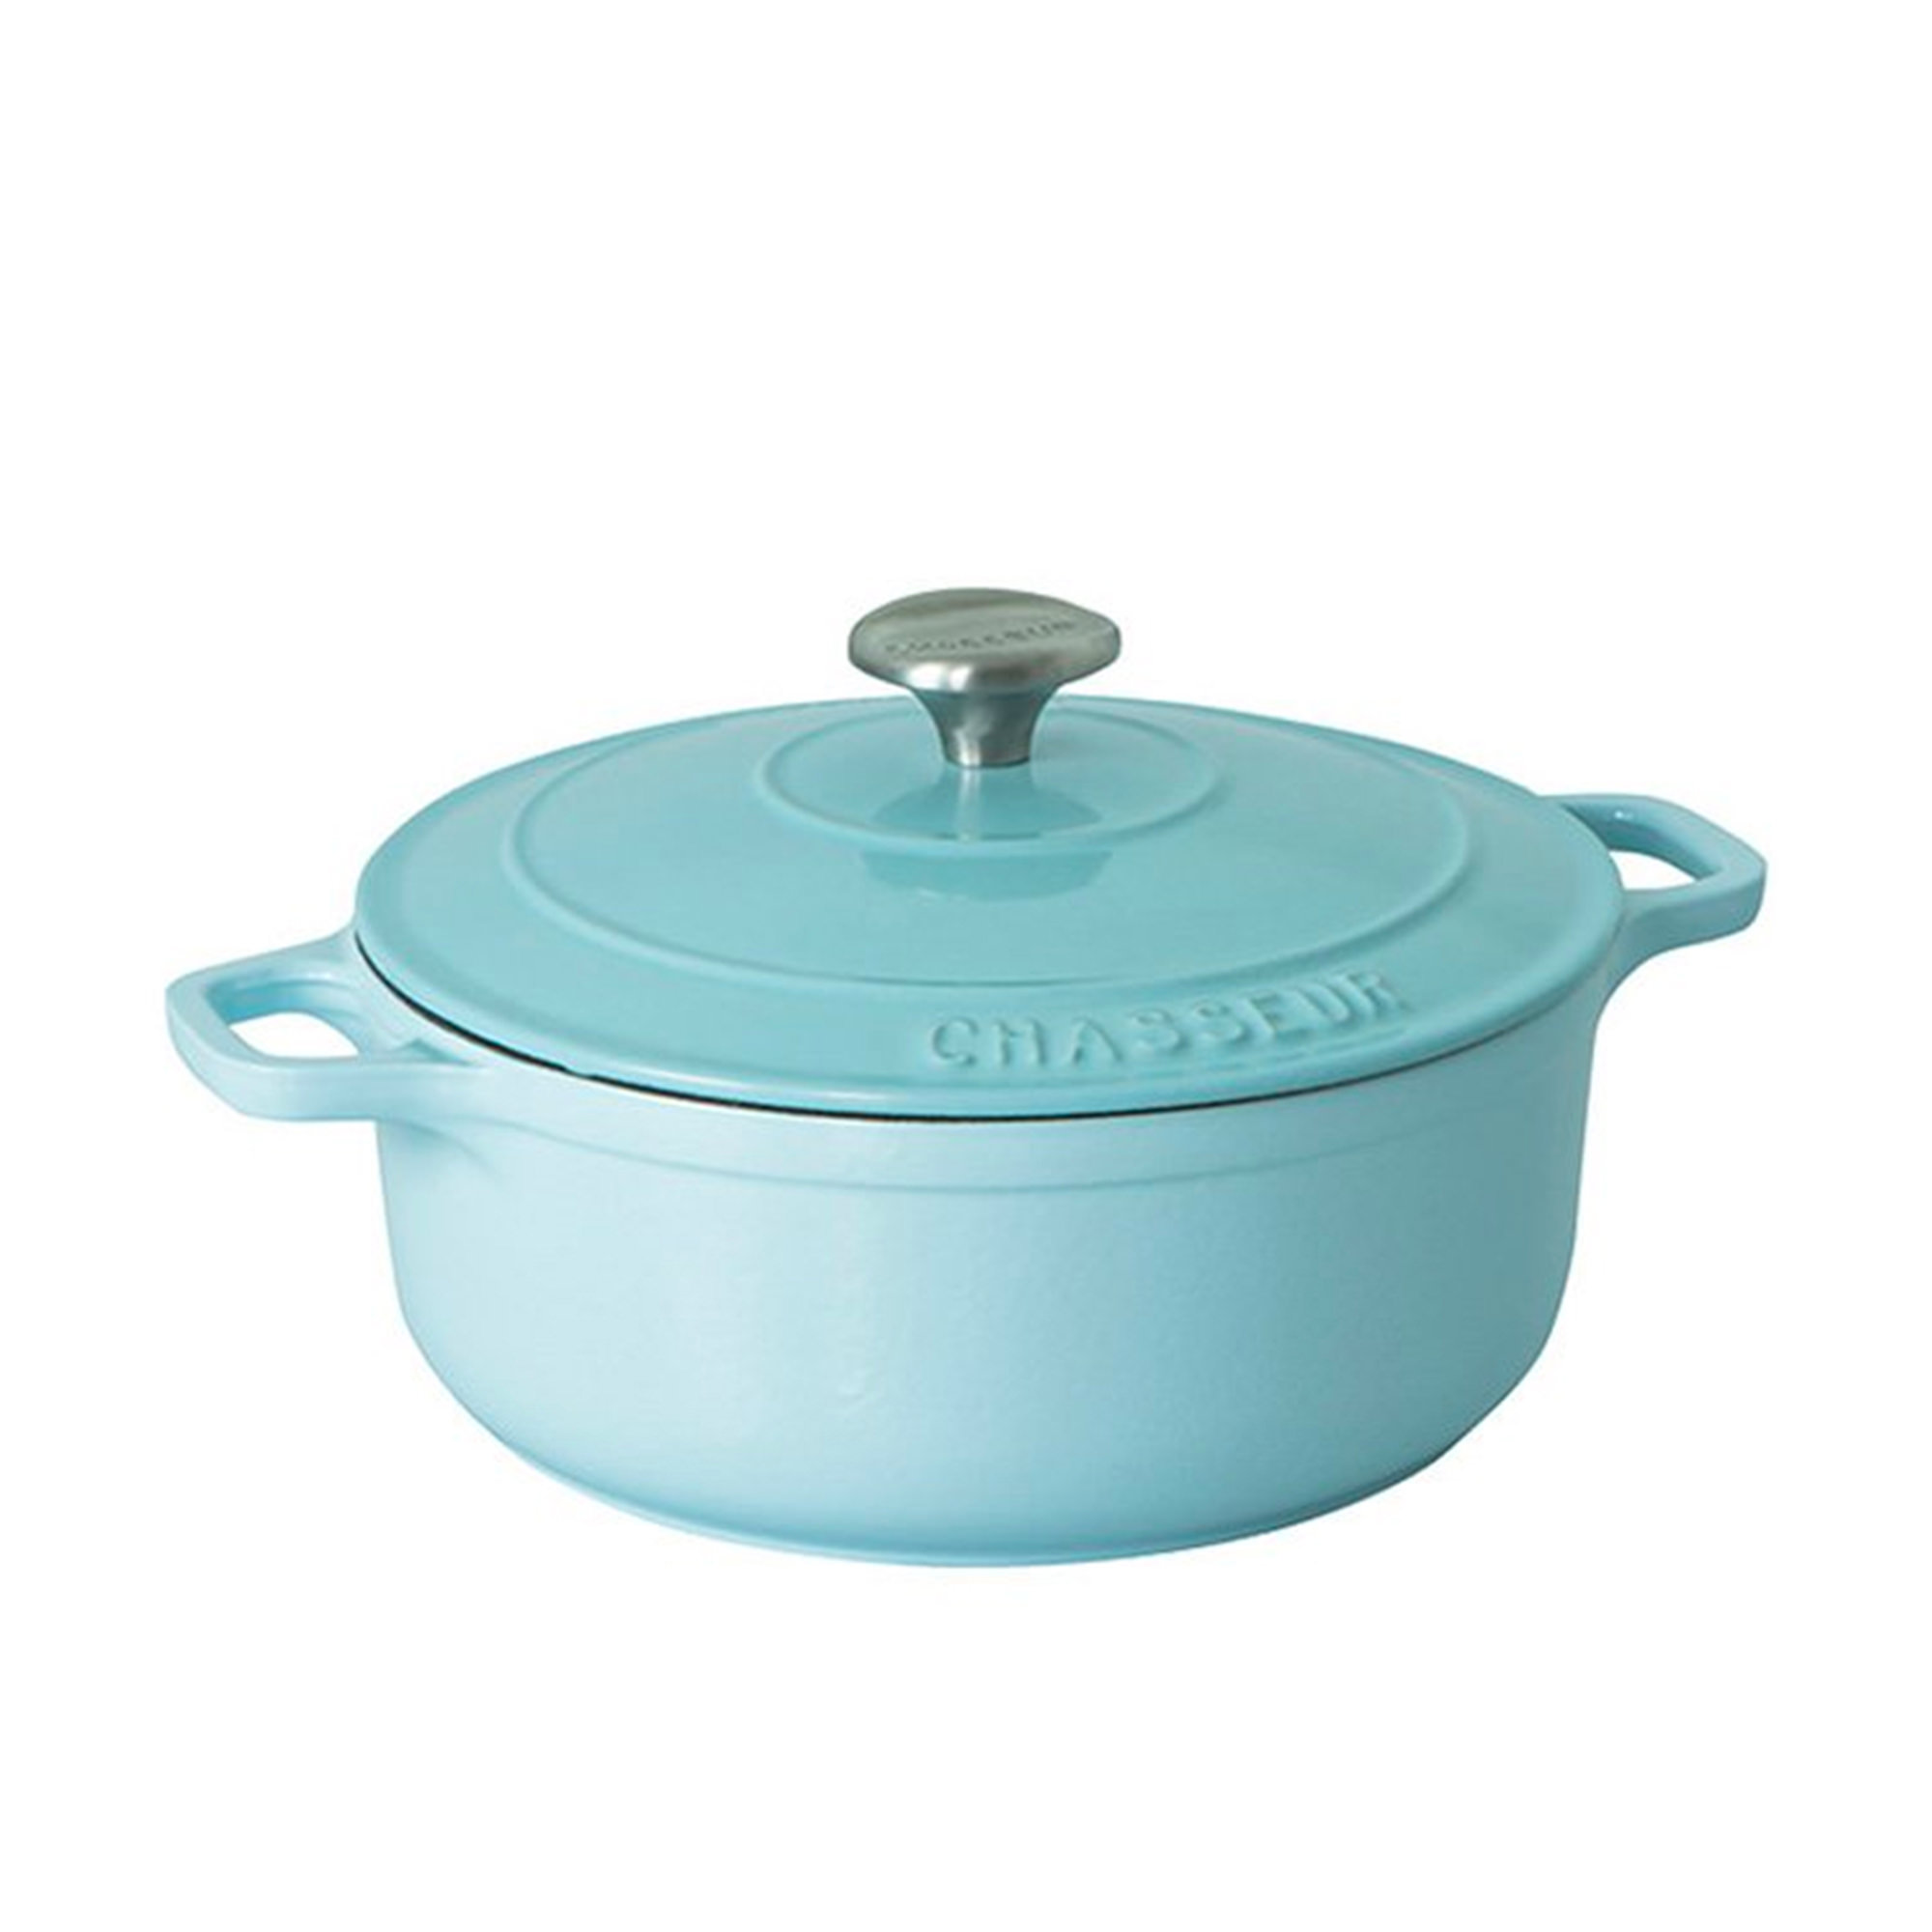 Chasseur Round French Oven 26cm - 5L Duck Egg Blue